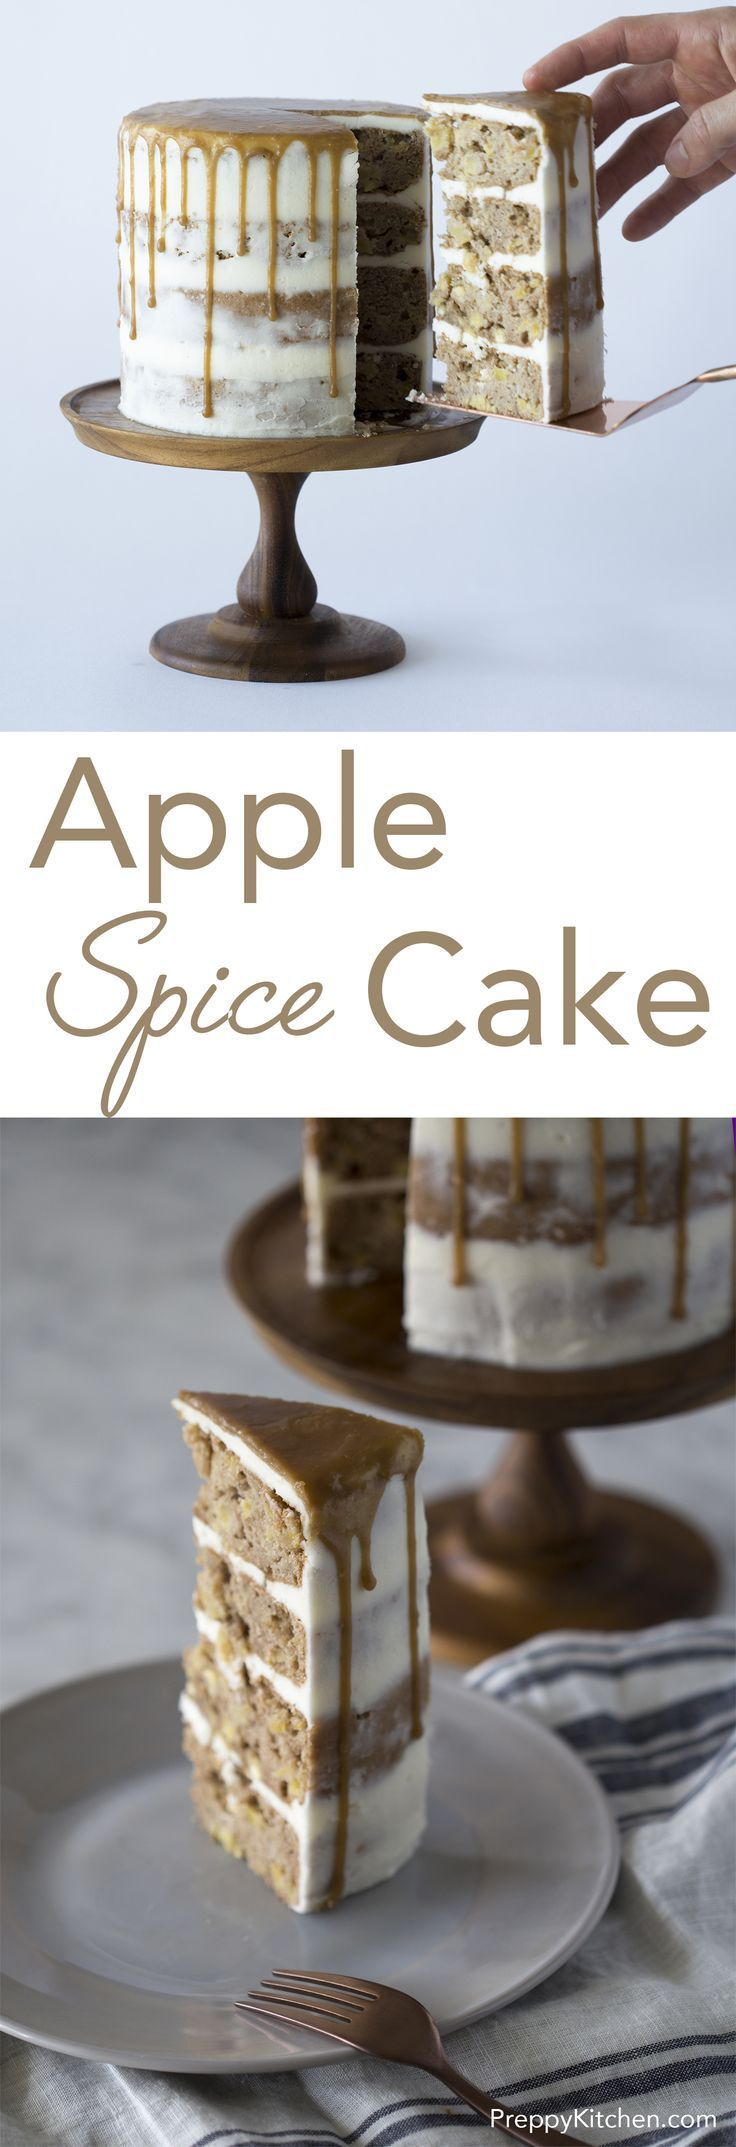 for Autumn, this delicious caramel apple spice cake is packed with apples, Fall spices and caramel. Click over for full recipe andante video! via /preppykitchen/